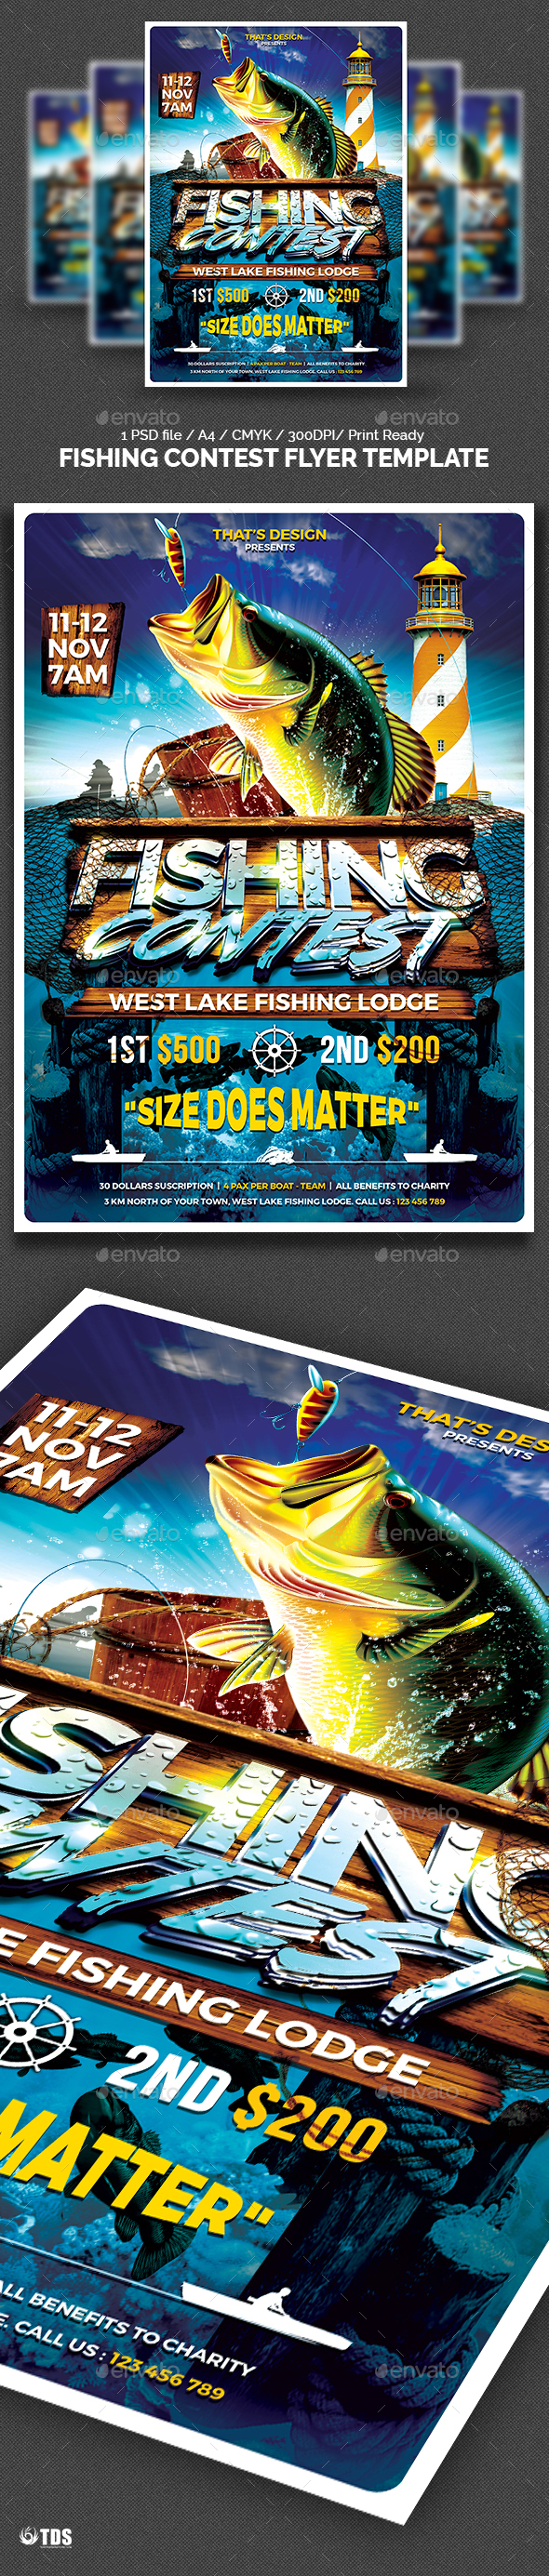 Fishing poster graphics designs templates from graphicriver saigontimesfo